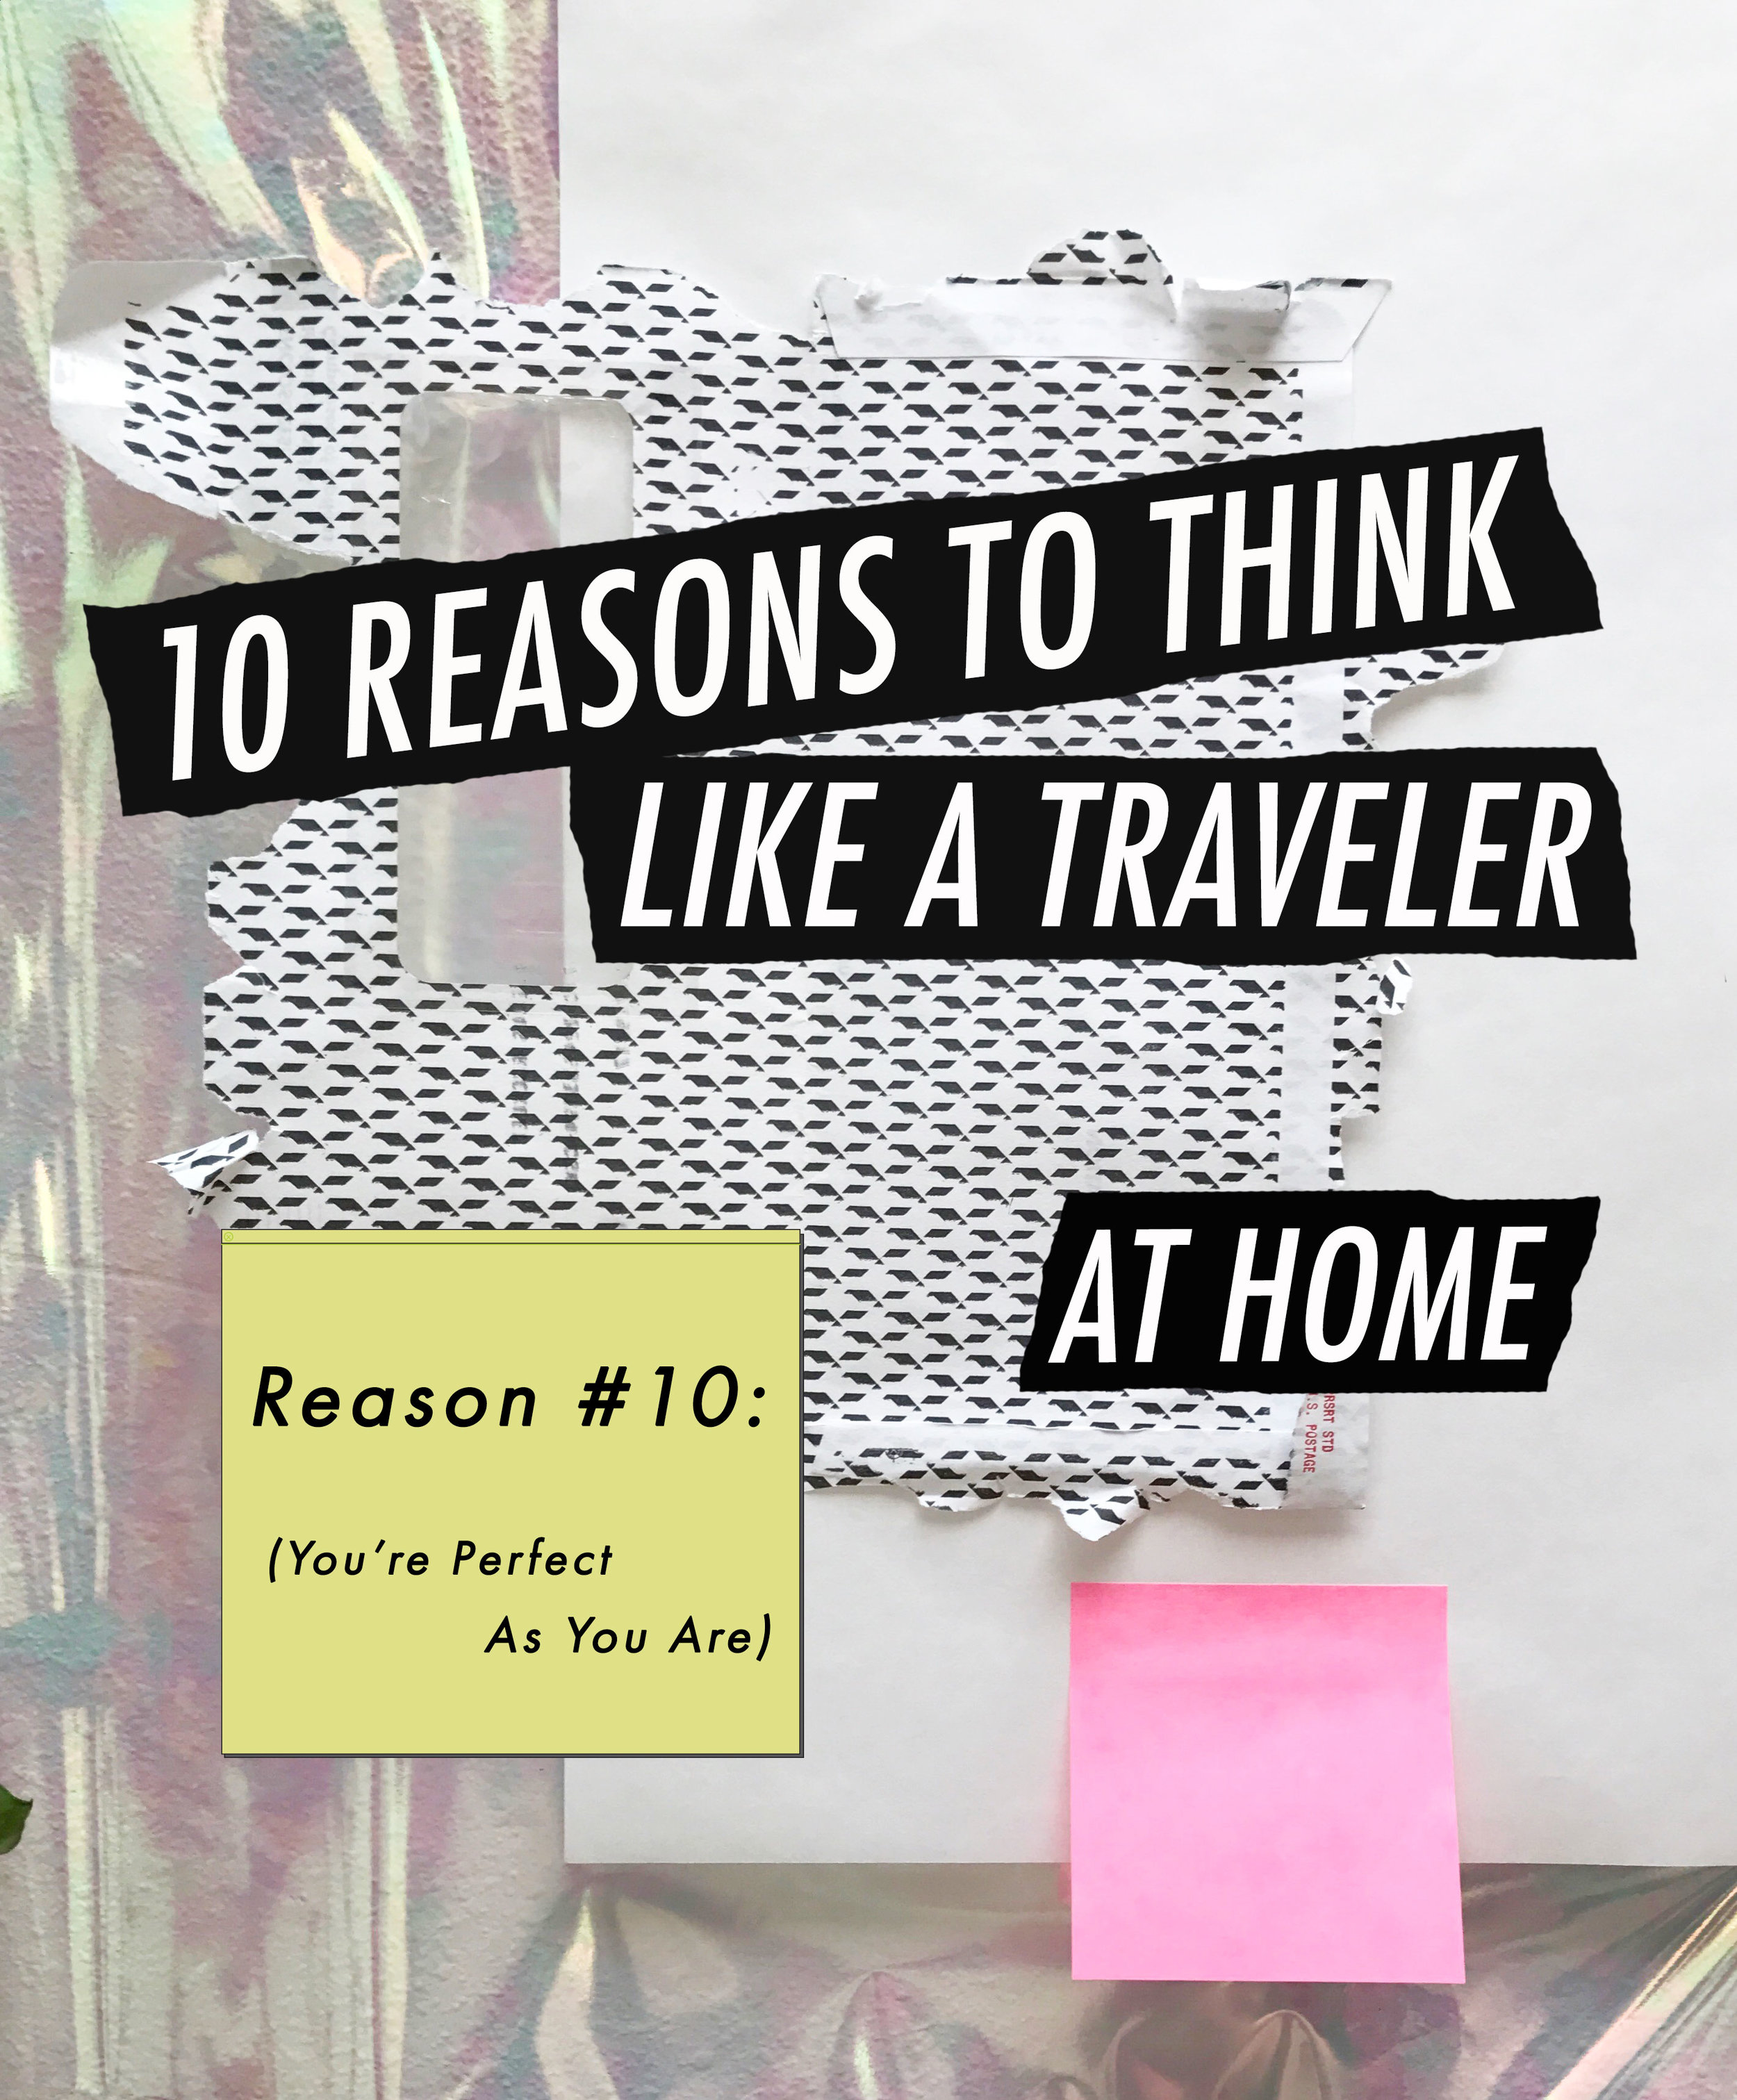 10 Reasons_Reason 10_Local(Tourist)